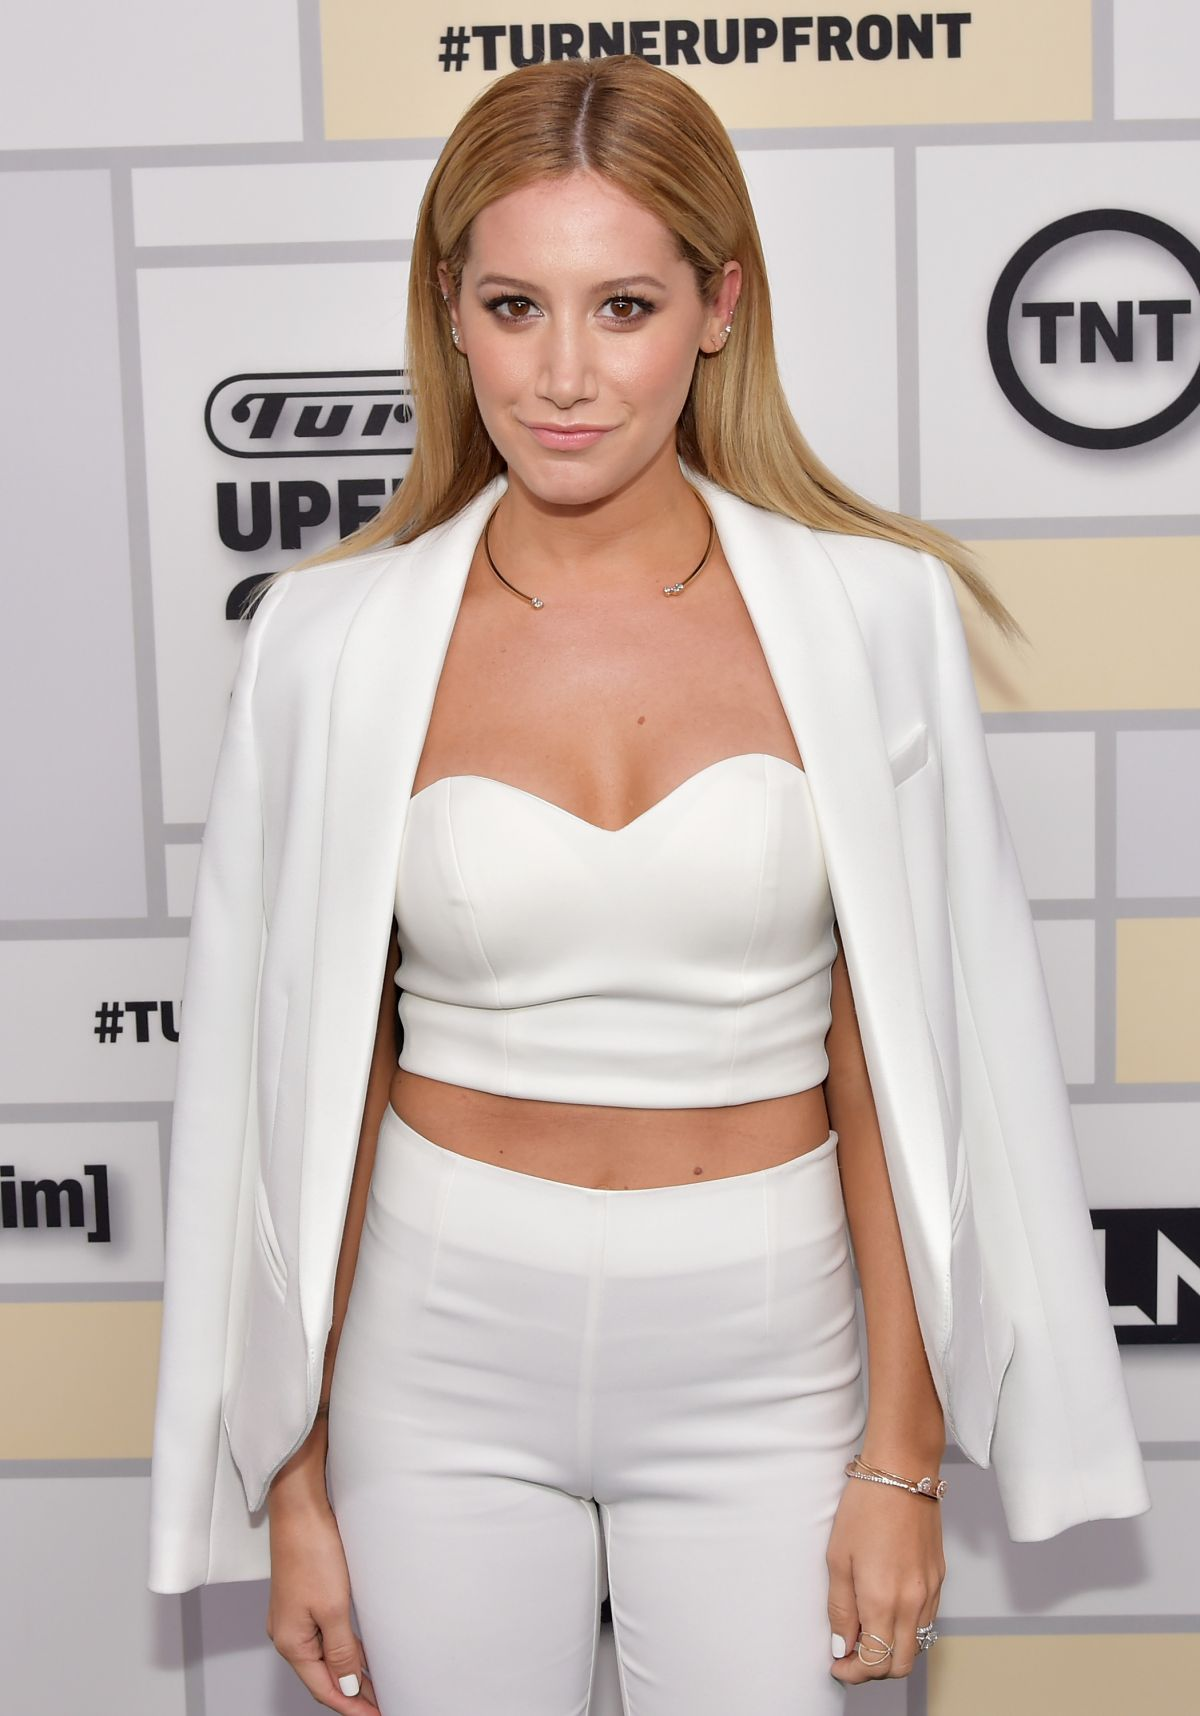 ASHLEY TISDALE at Turner Upfront 2015 in New York